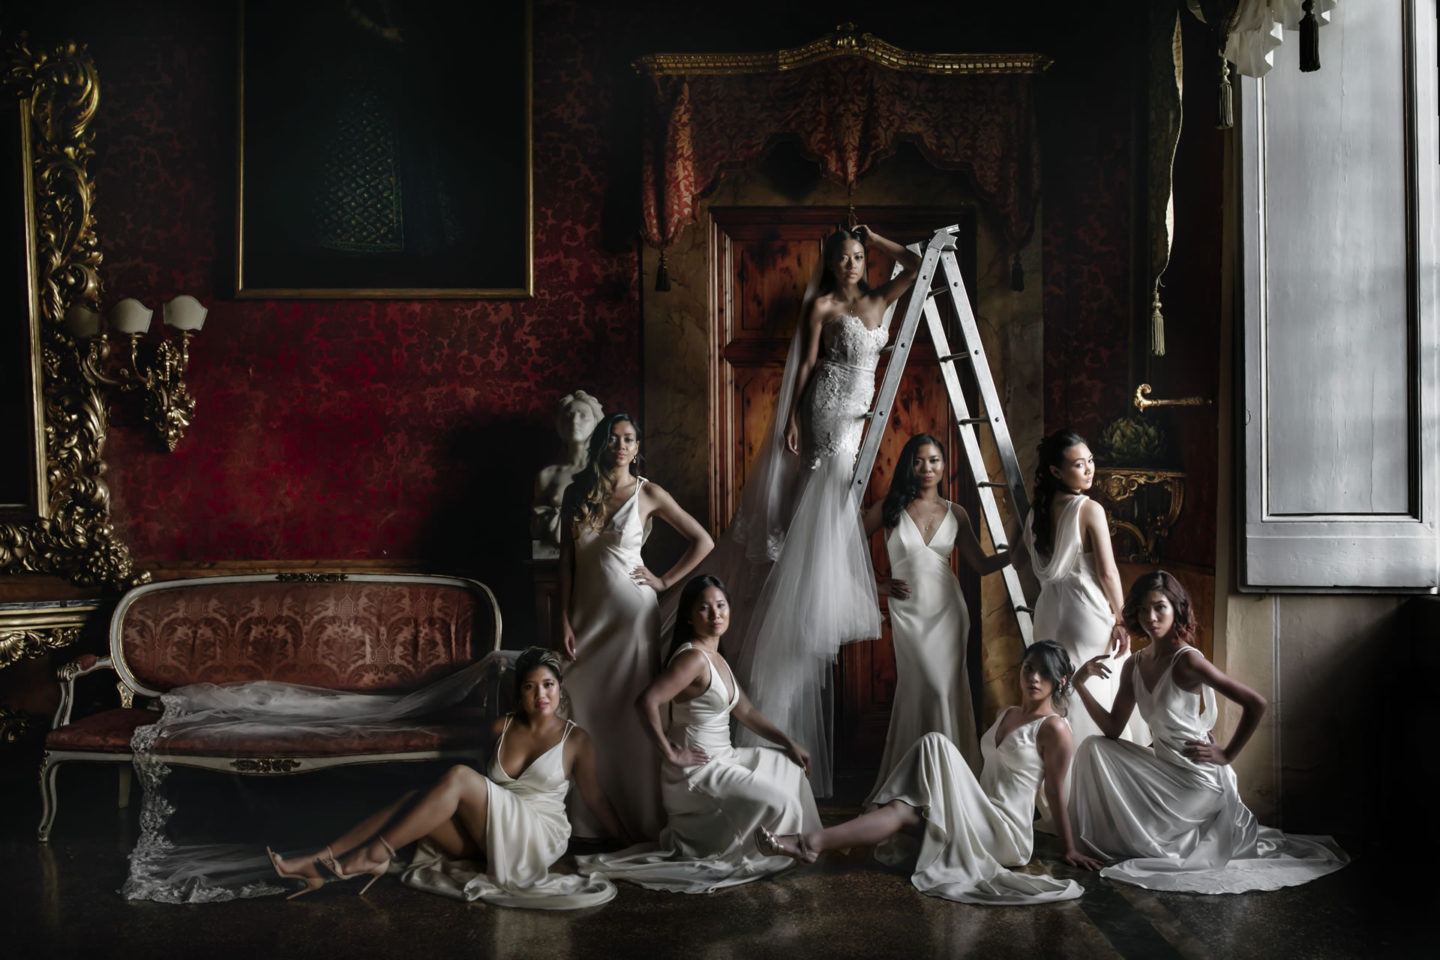 Chic :: Groups Bridal Parties :: David Bastianoni wedding photographer